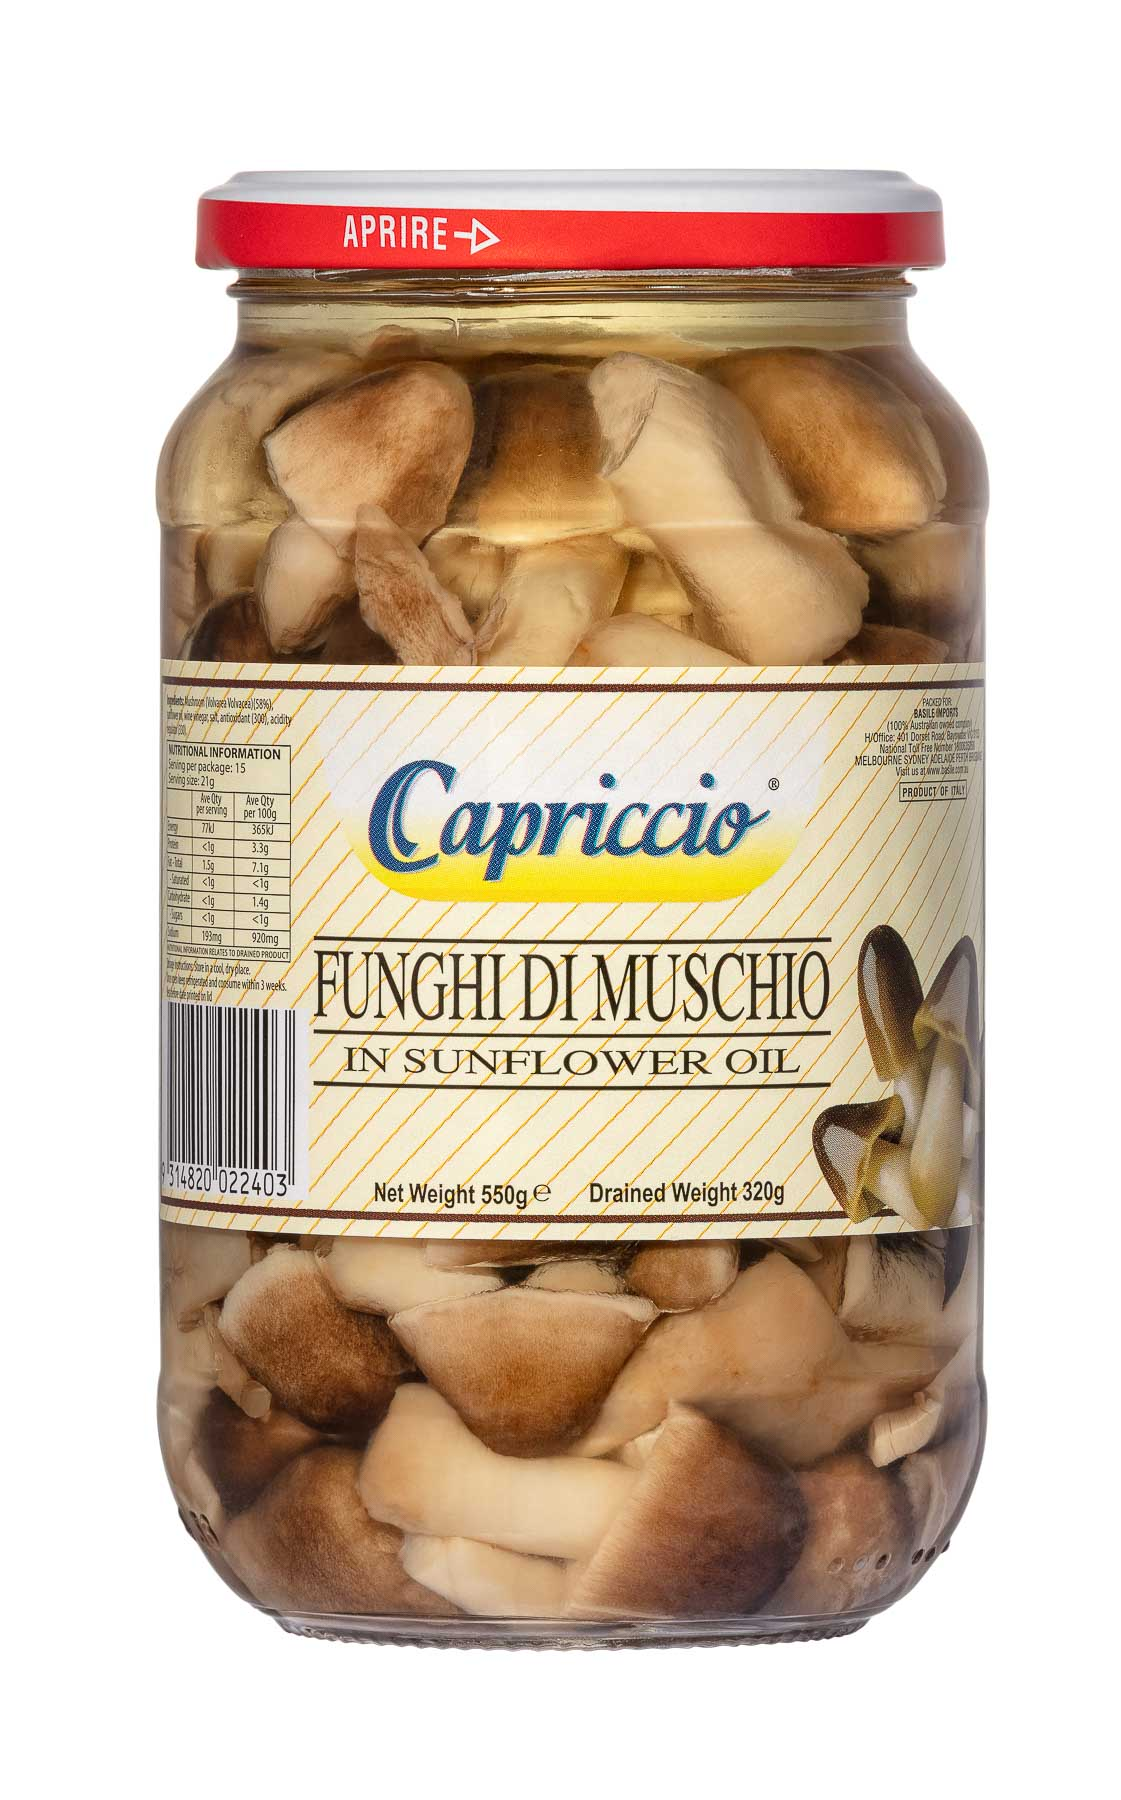 Funghi di Muschio in Sunflower Oil 550g  - Product Photography sample